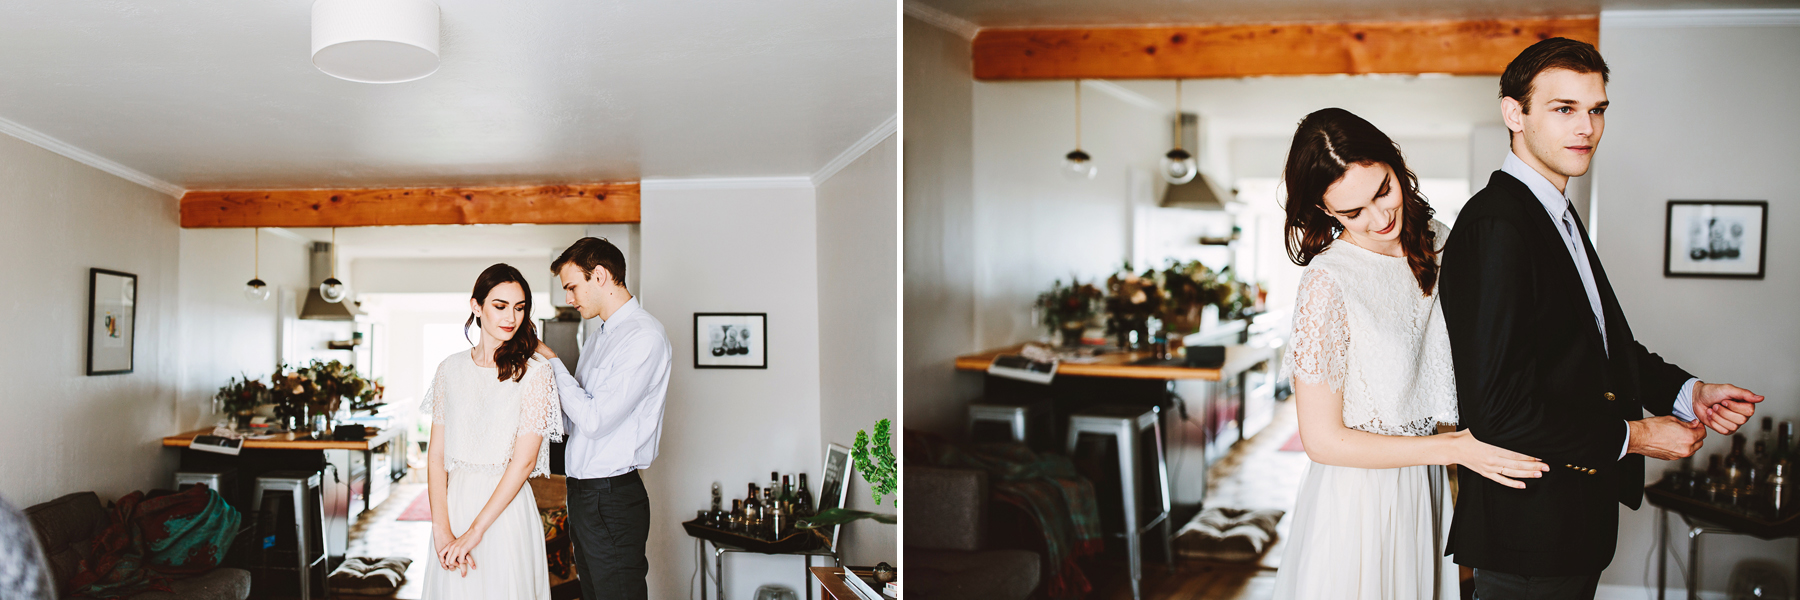 Field Theory San Francisco Interior Design